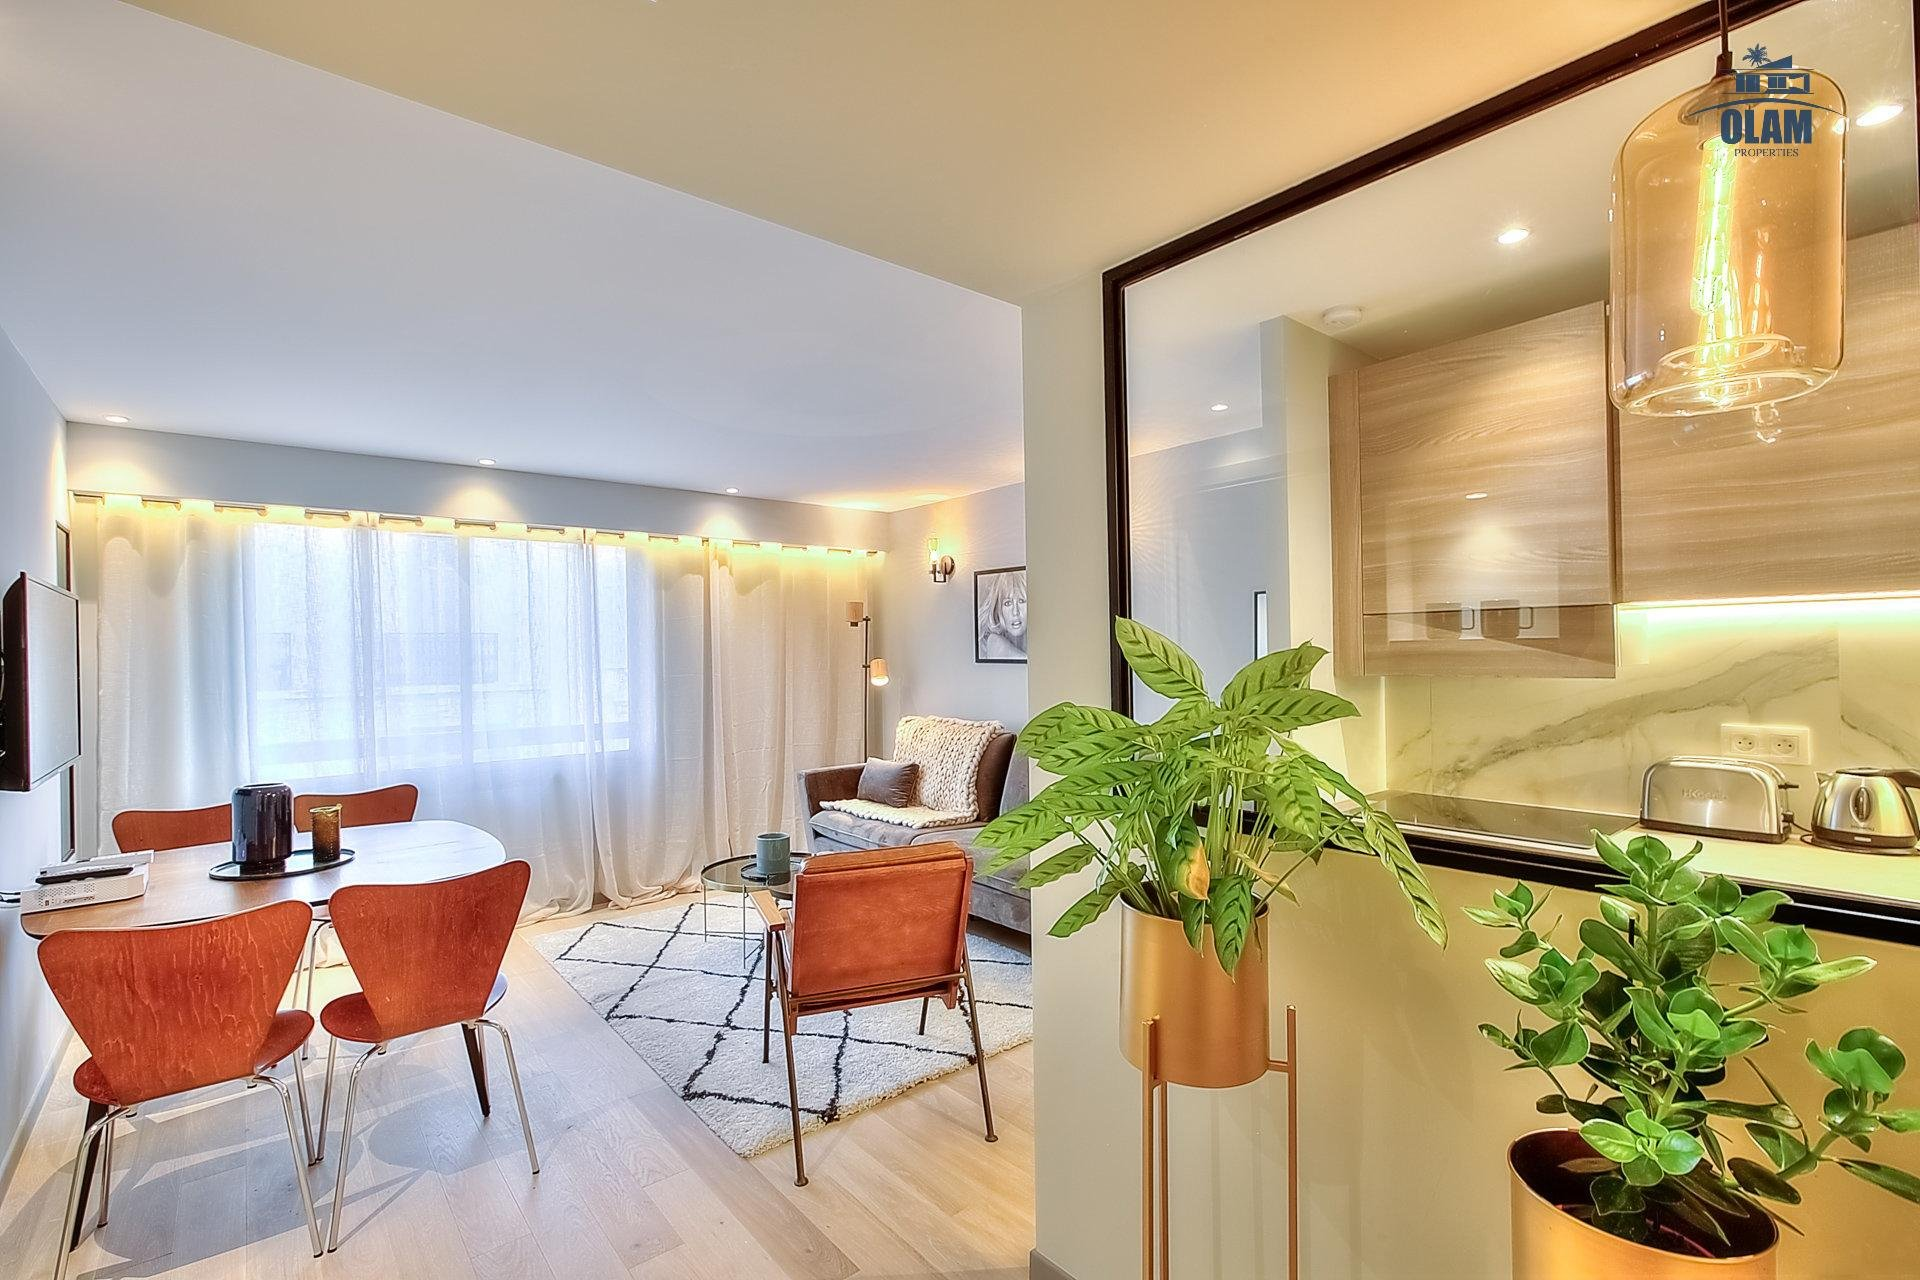 Modern architect 2 BR in Cannes - minutes to Beaches, Croisette Palais Festivals